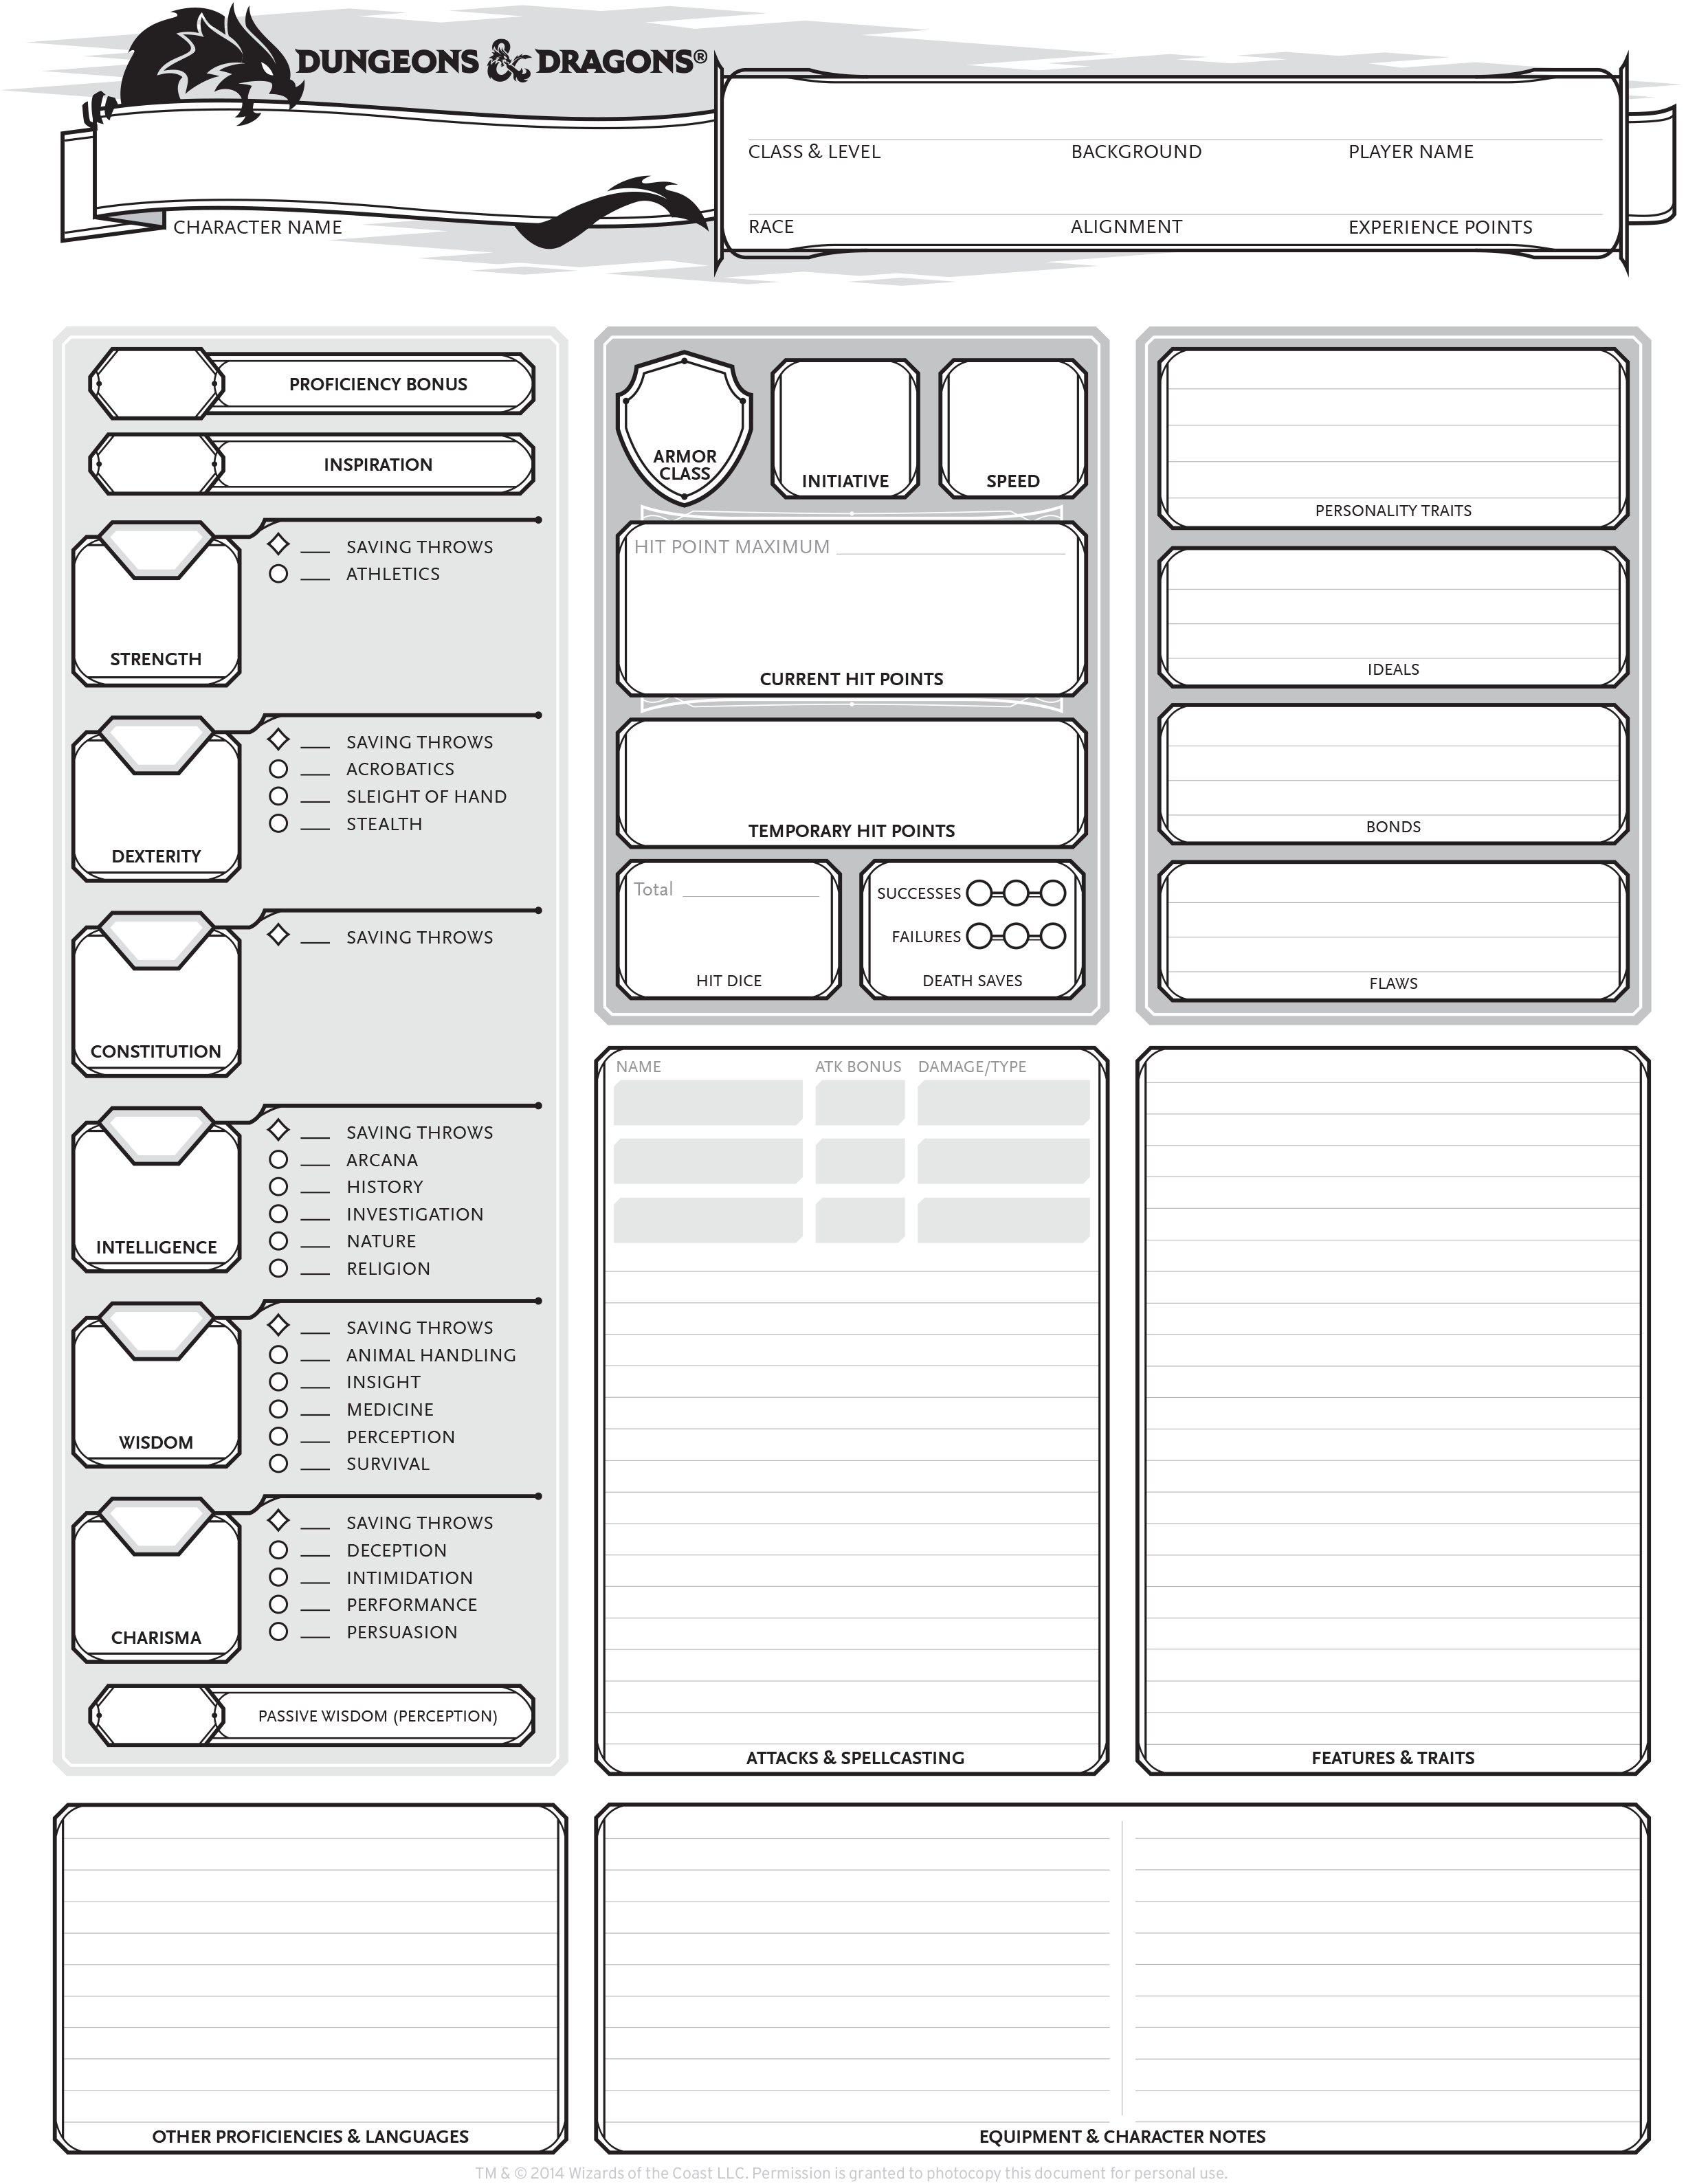 image relating to 5e Character Sheet Printable known as Coming up with a Very simple Personality inside of Dungeons and Dragons, 5th Model